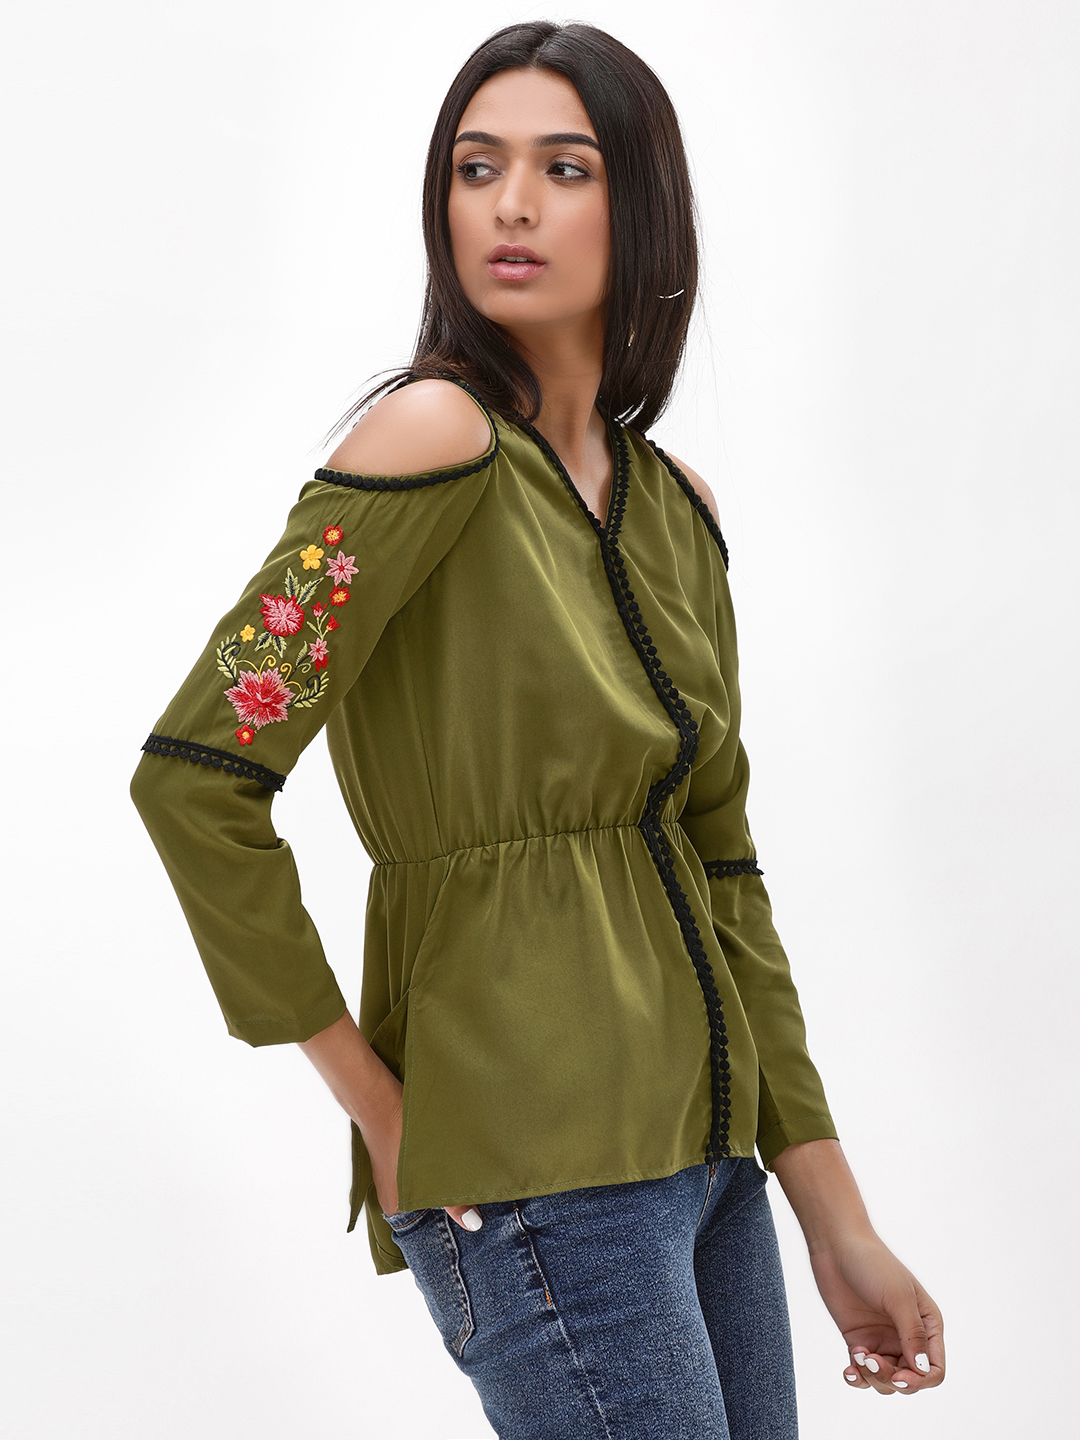 Rena Love Green Embroidered Cold Shoulder Top 1